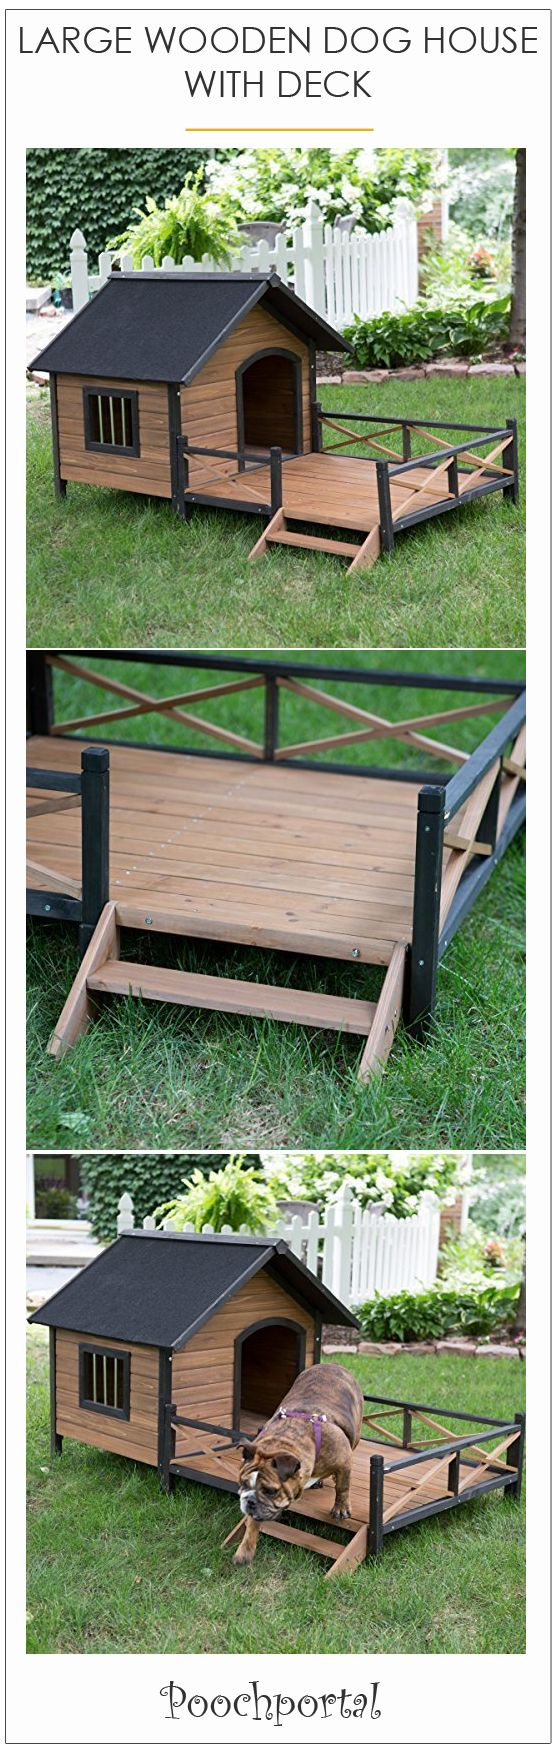 Dog house of green valley - 25 Best Ideas About Large Dog House On Pinterest In The Dog House Dog Houses And Dog Rooms